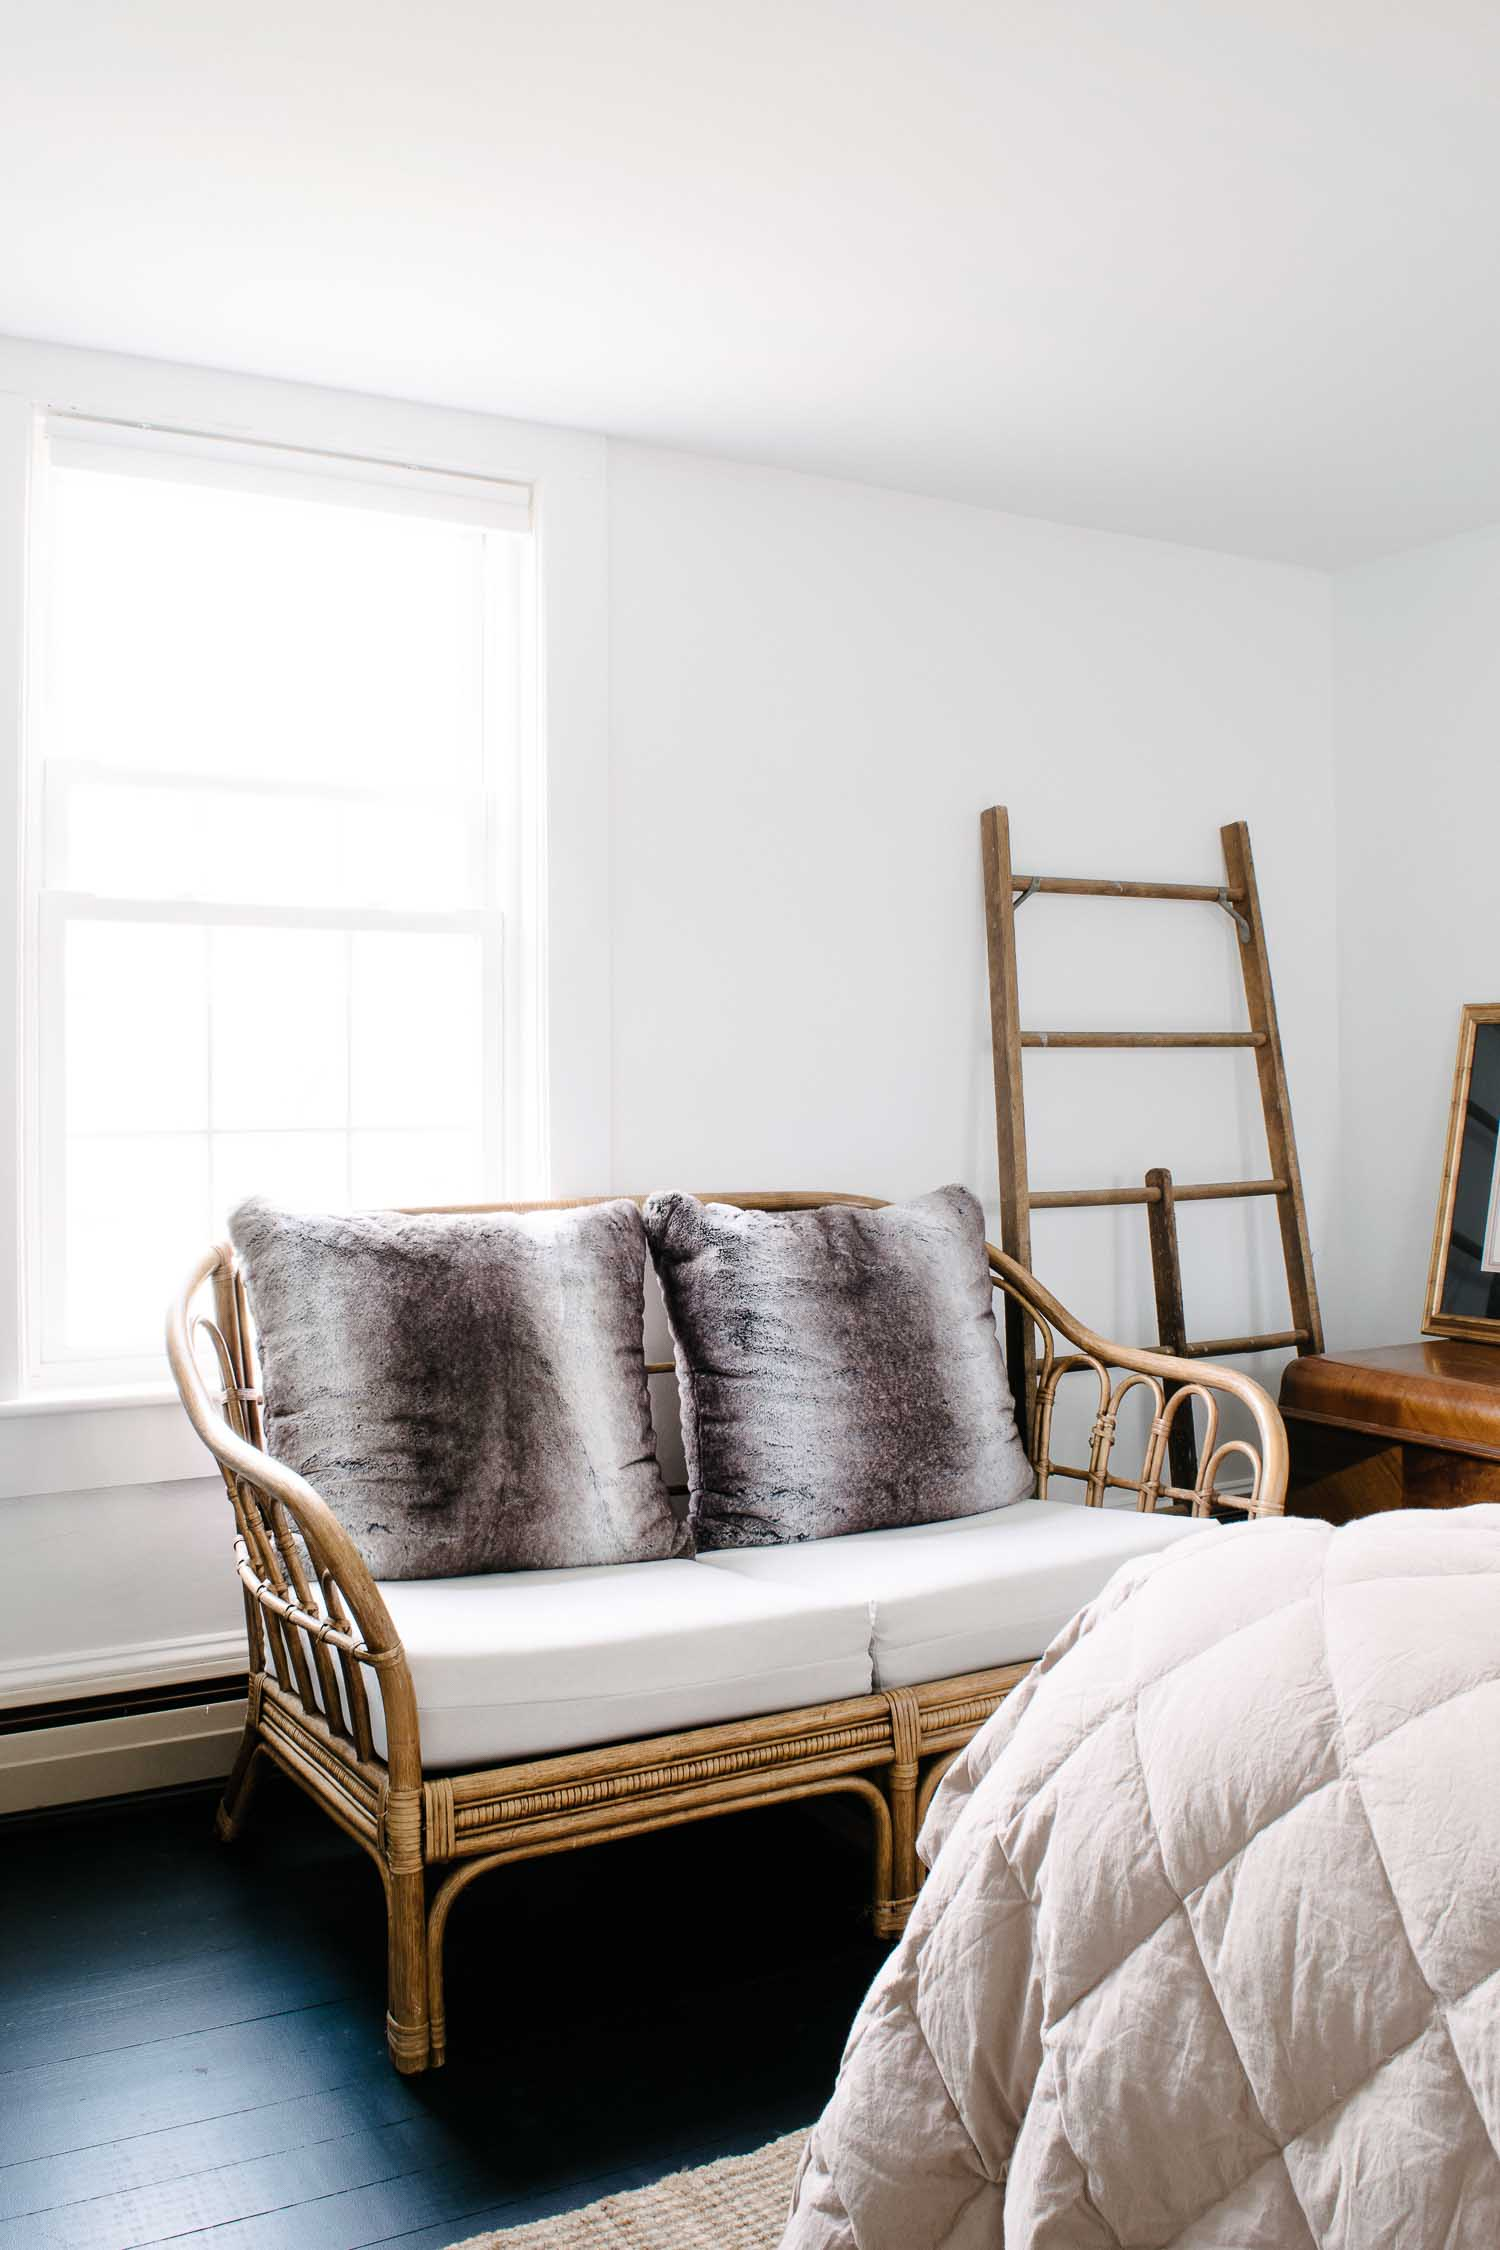 Black painted floors with a eclectic vintage style in a historic home. Designed by DIY & Home Bloggers This Giant Life. Love to do this with my vintage rattan love seat!